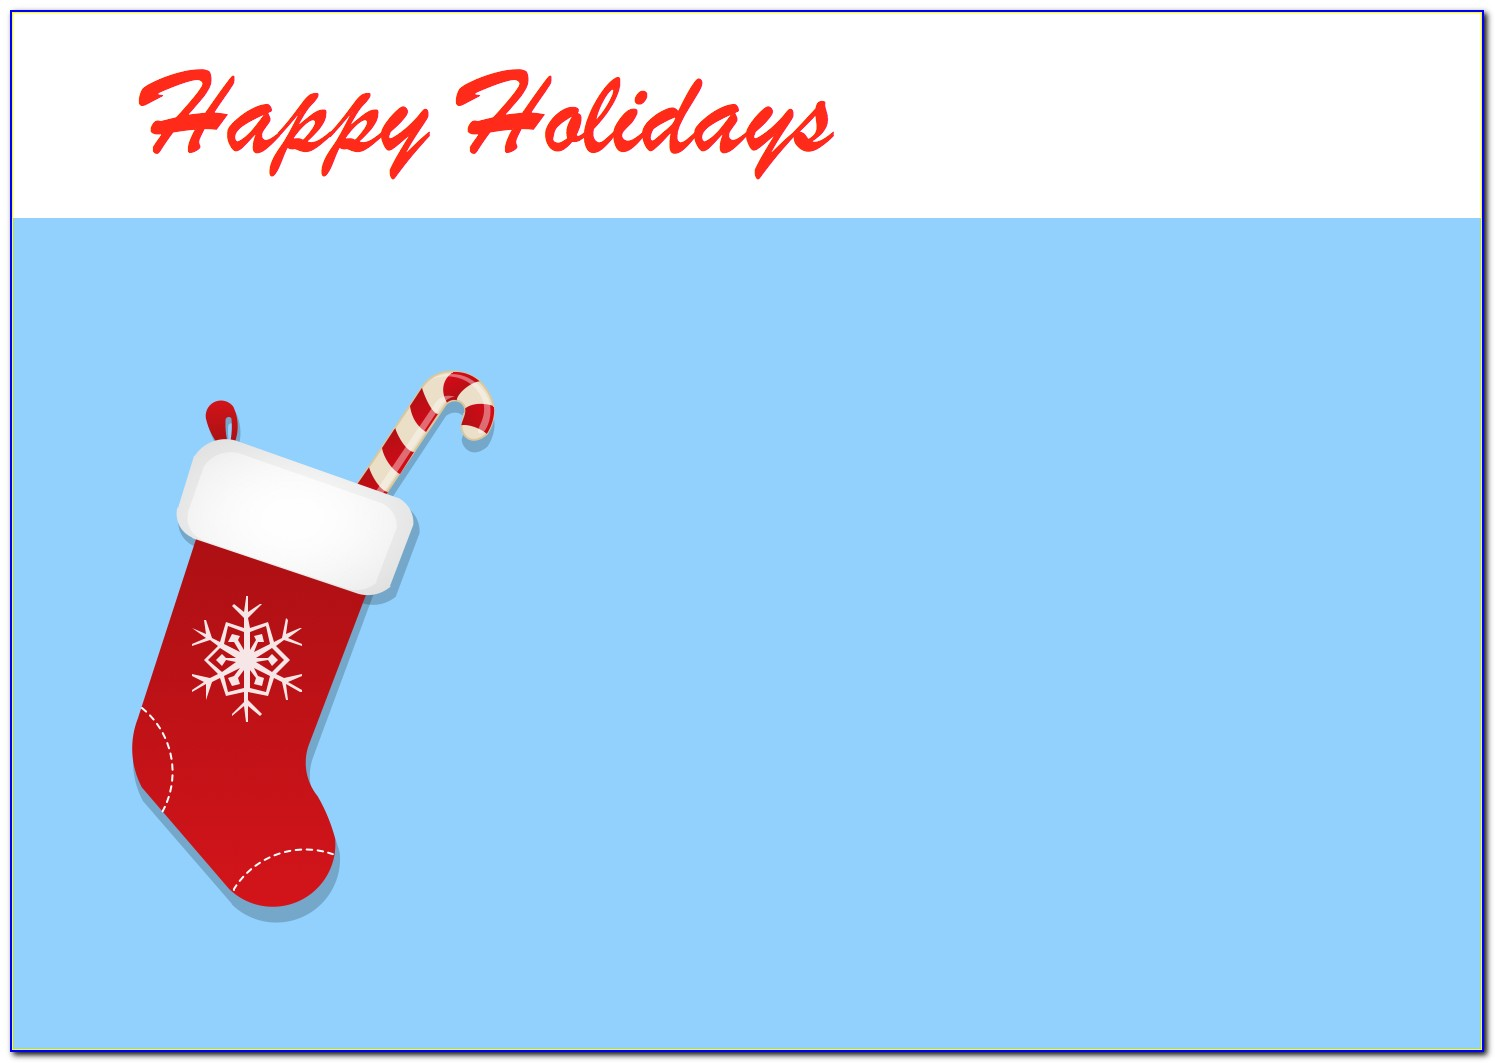 Corporate Holiday Ecards Templates